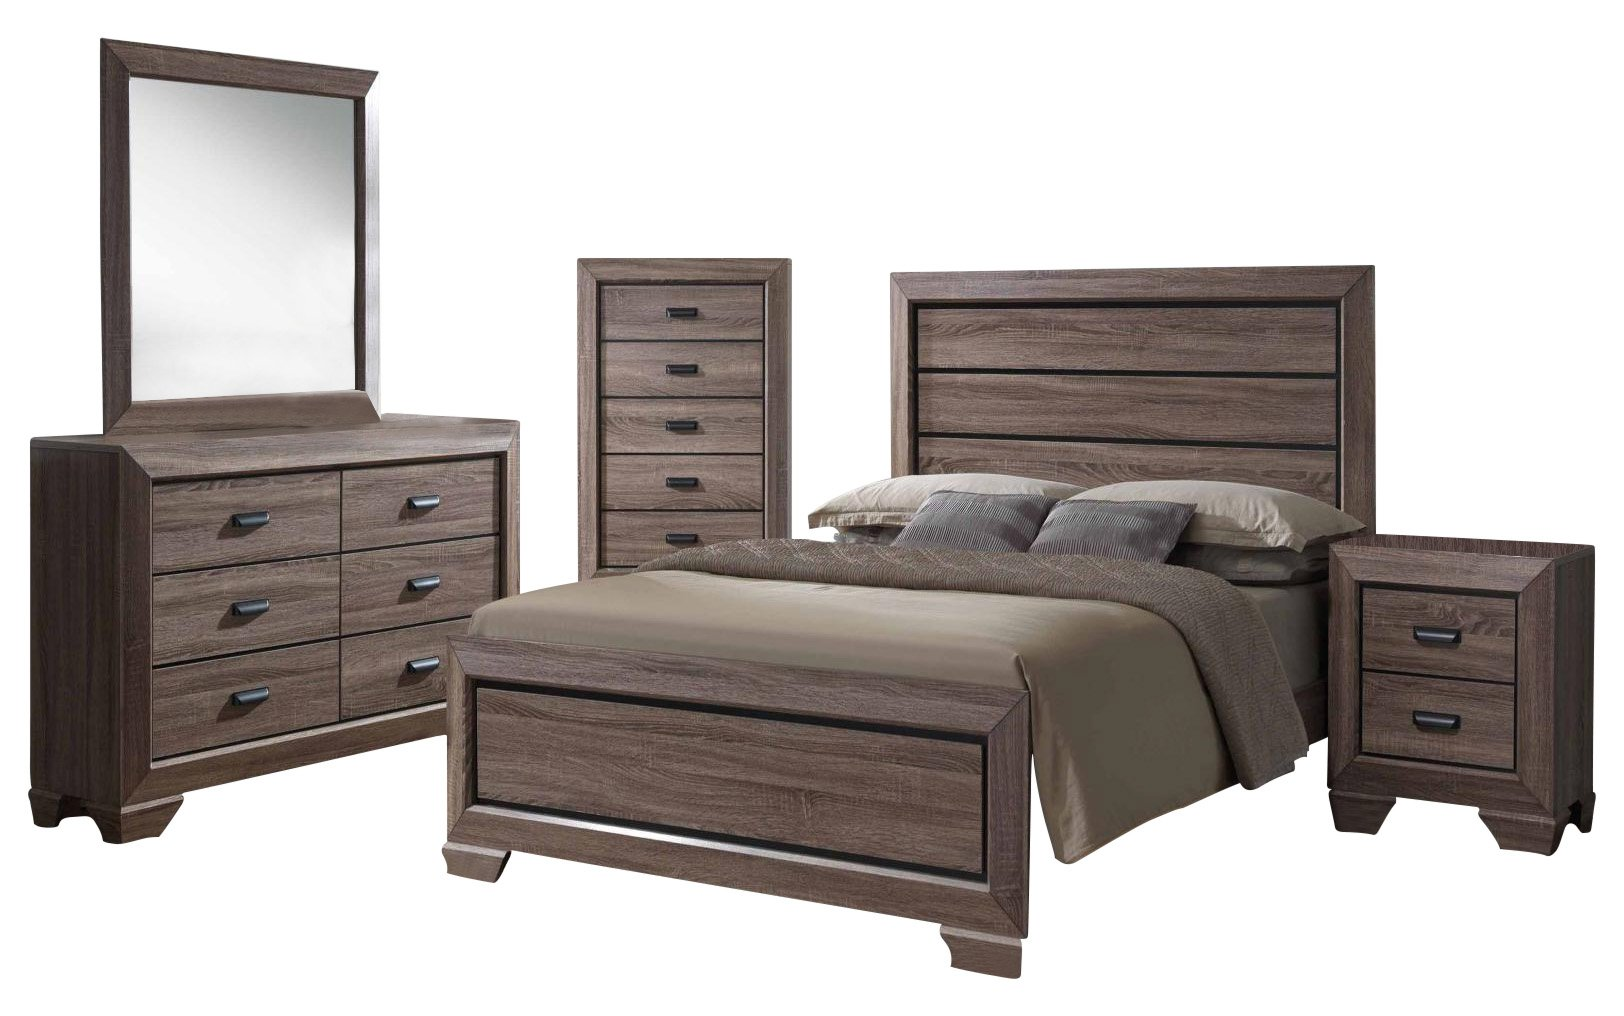 Kings Brand 6-Piece Queen Size Black/Brown Wood Modern Bedroom Furniture Set, Bed, Dresser, Mirror,